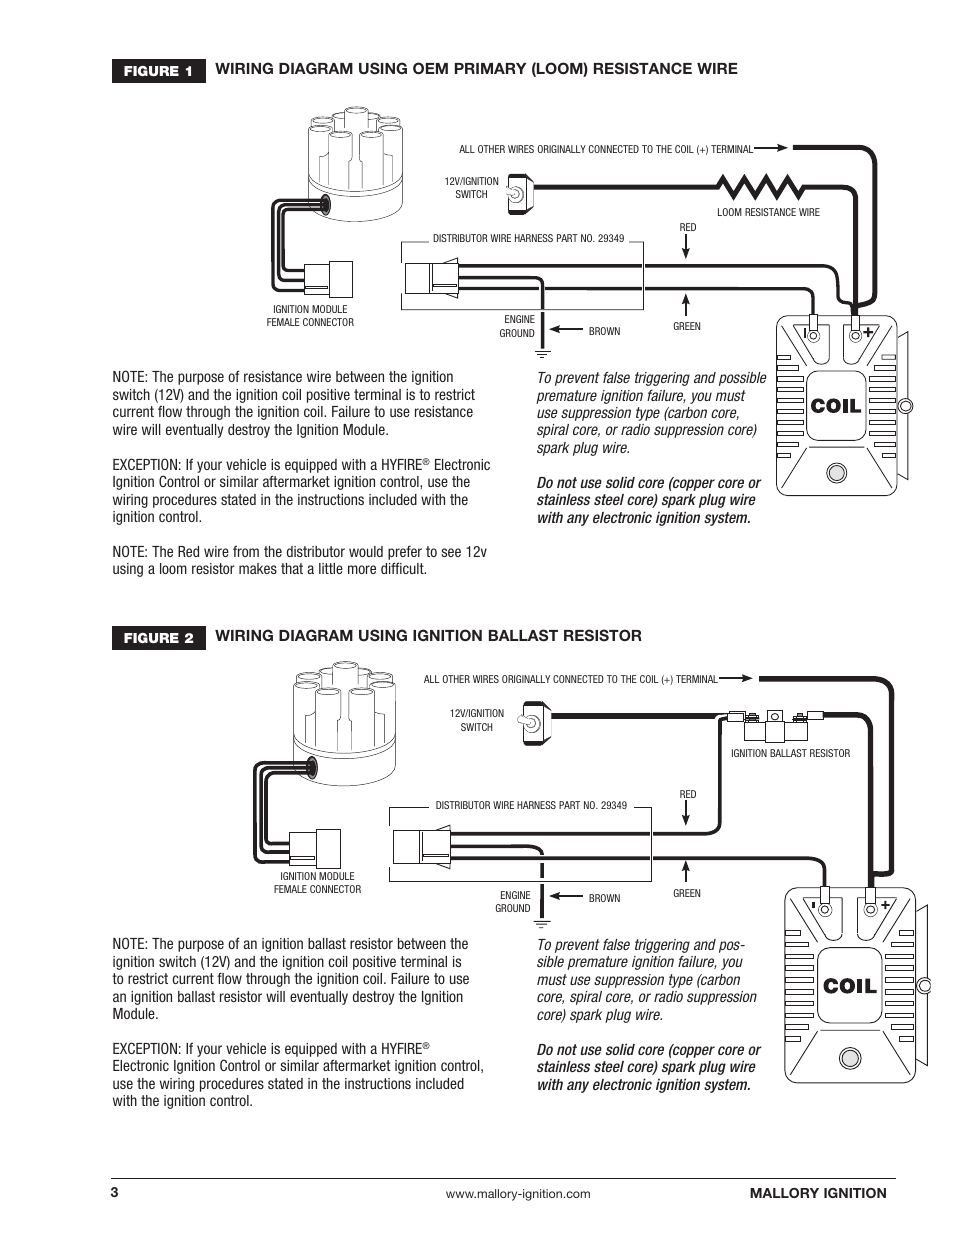 Mallory ignition wiring diagram mallory ignition mallory unilite old mallory ignition systems wiring diagrams on mallory ignition wiring diagram chevy mallory sciox Image collections